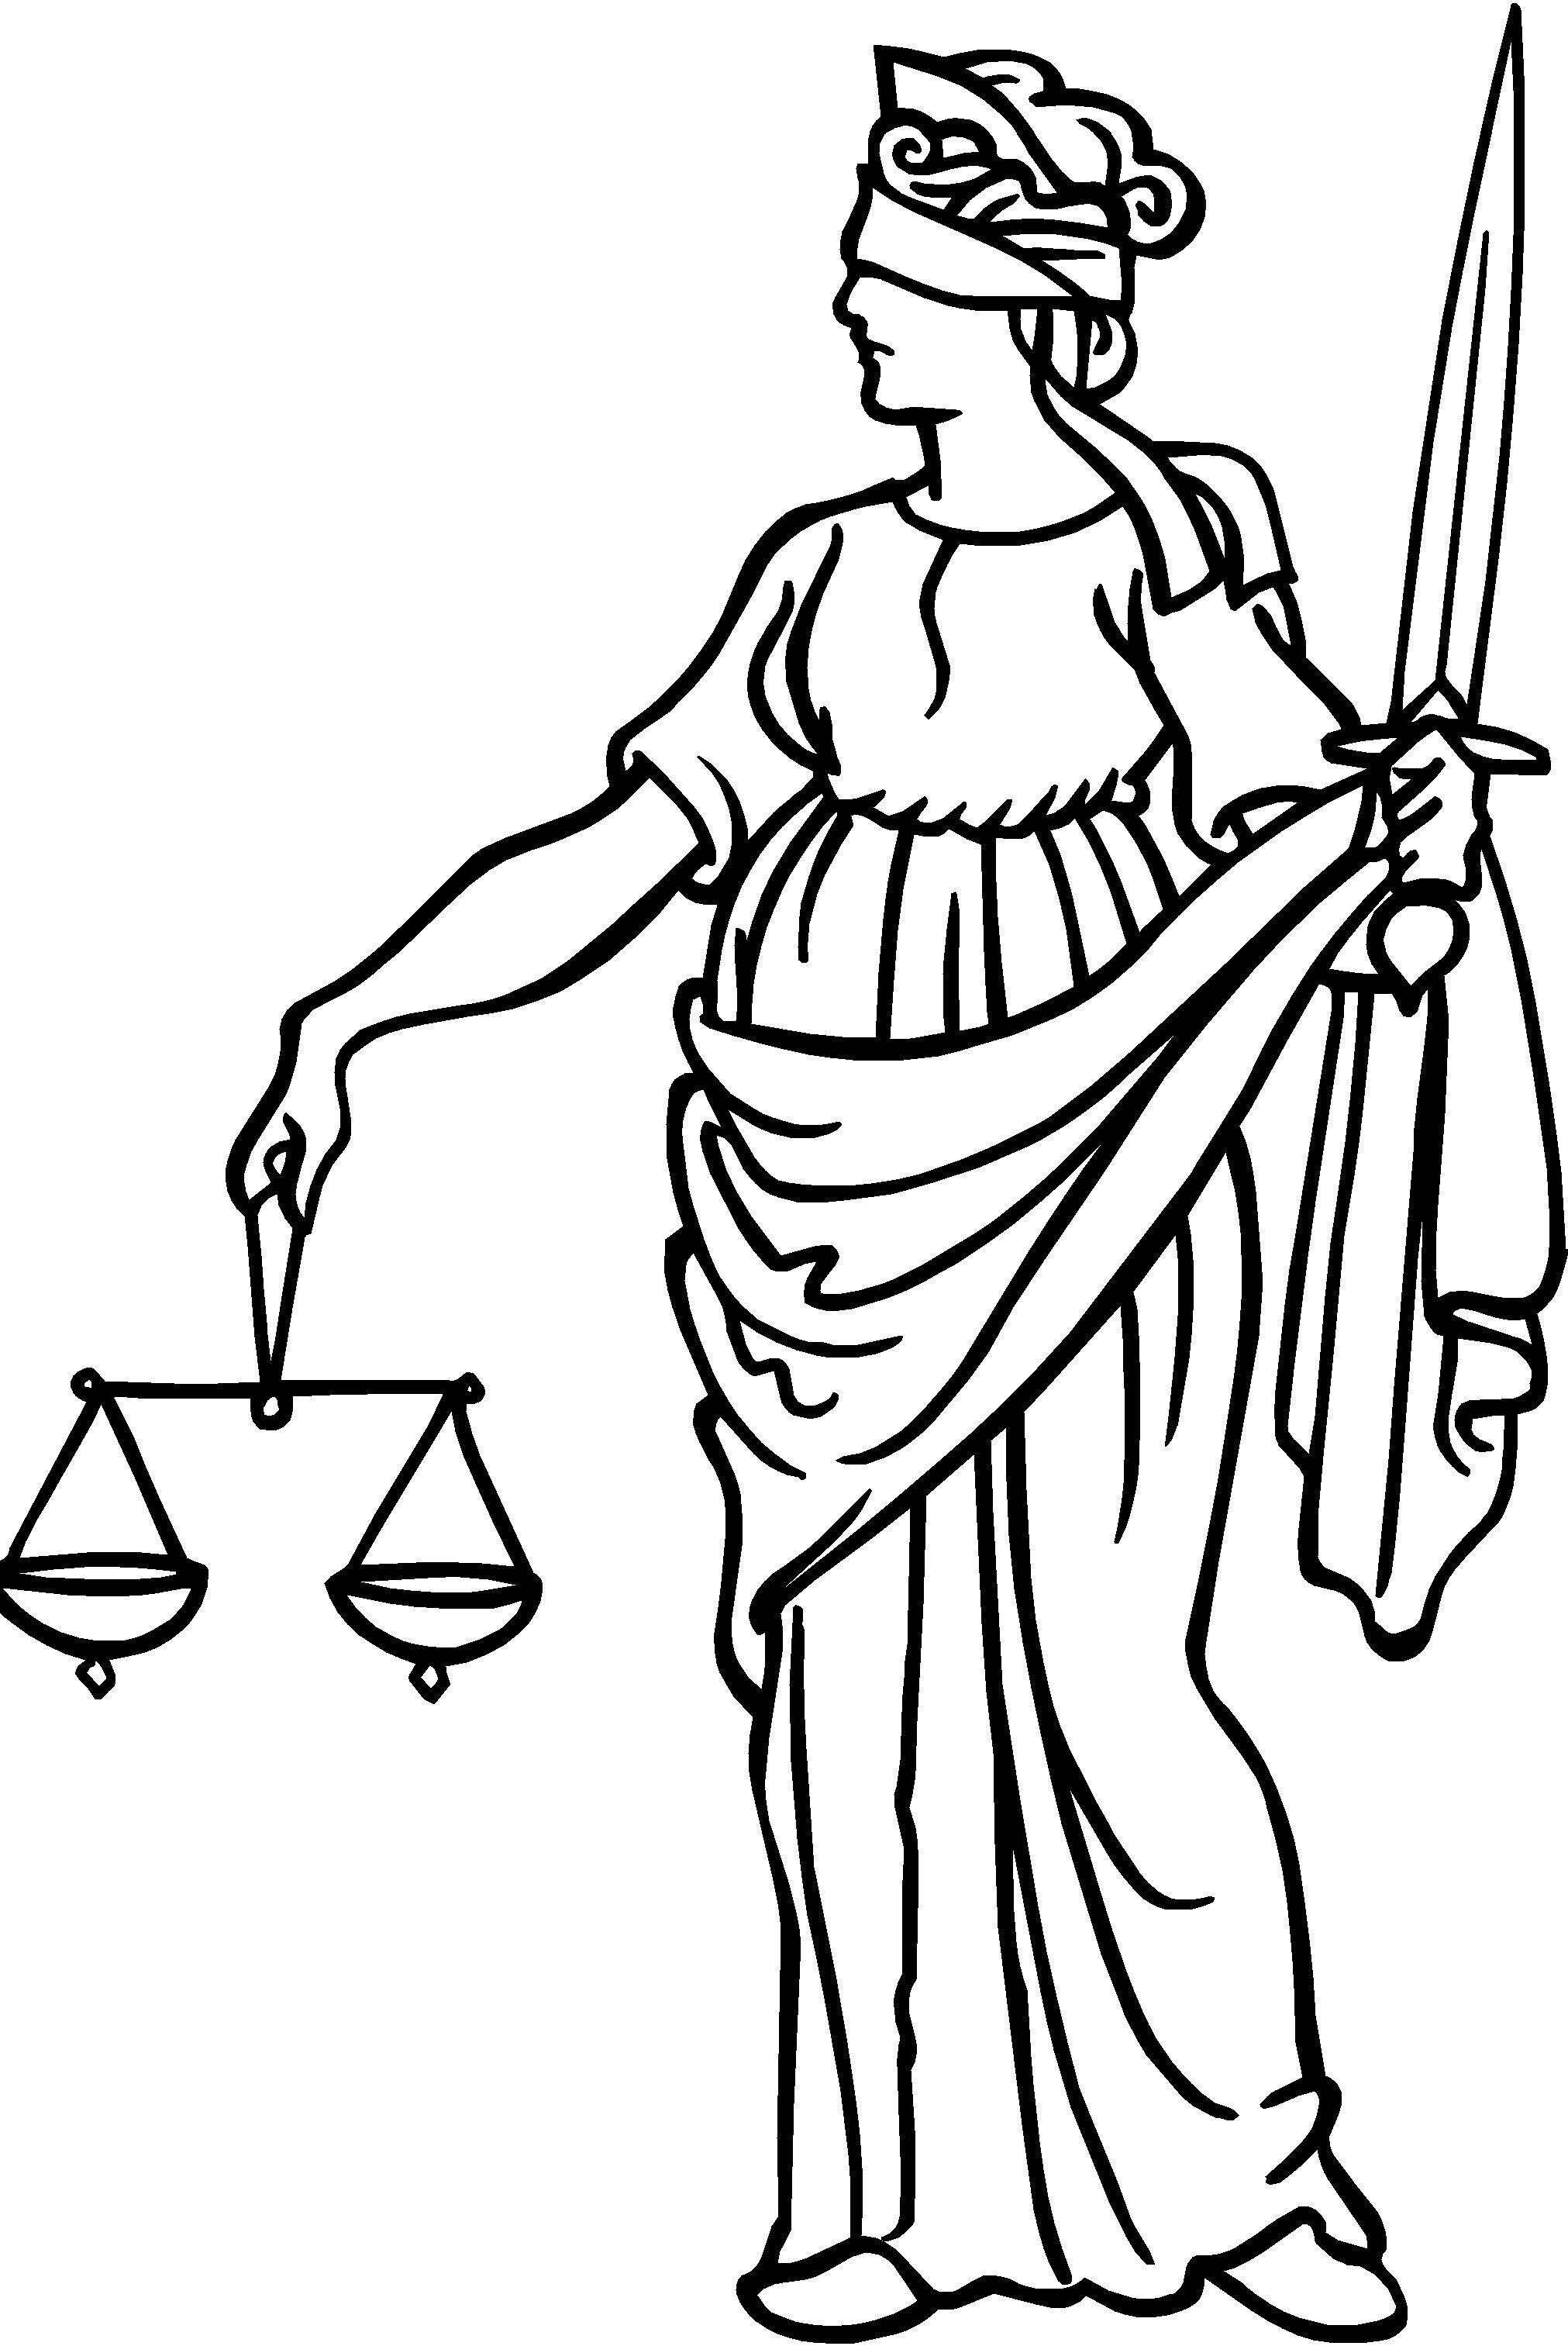 Top 10 ancient laws way ahead of their time lady justice roman laws system of justice biocorpaavc Choice Image